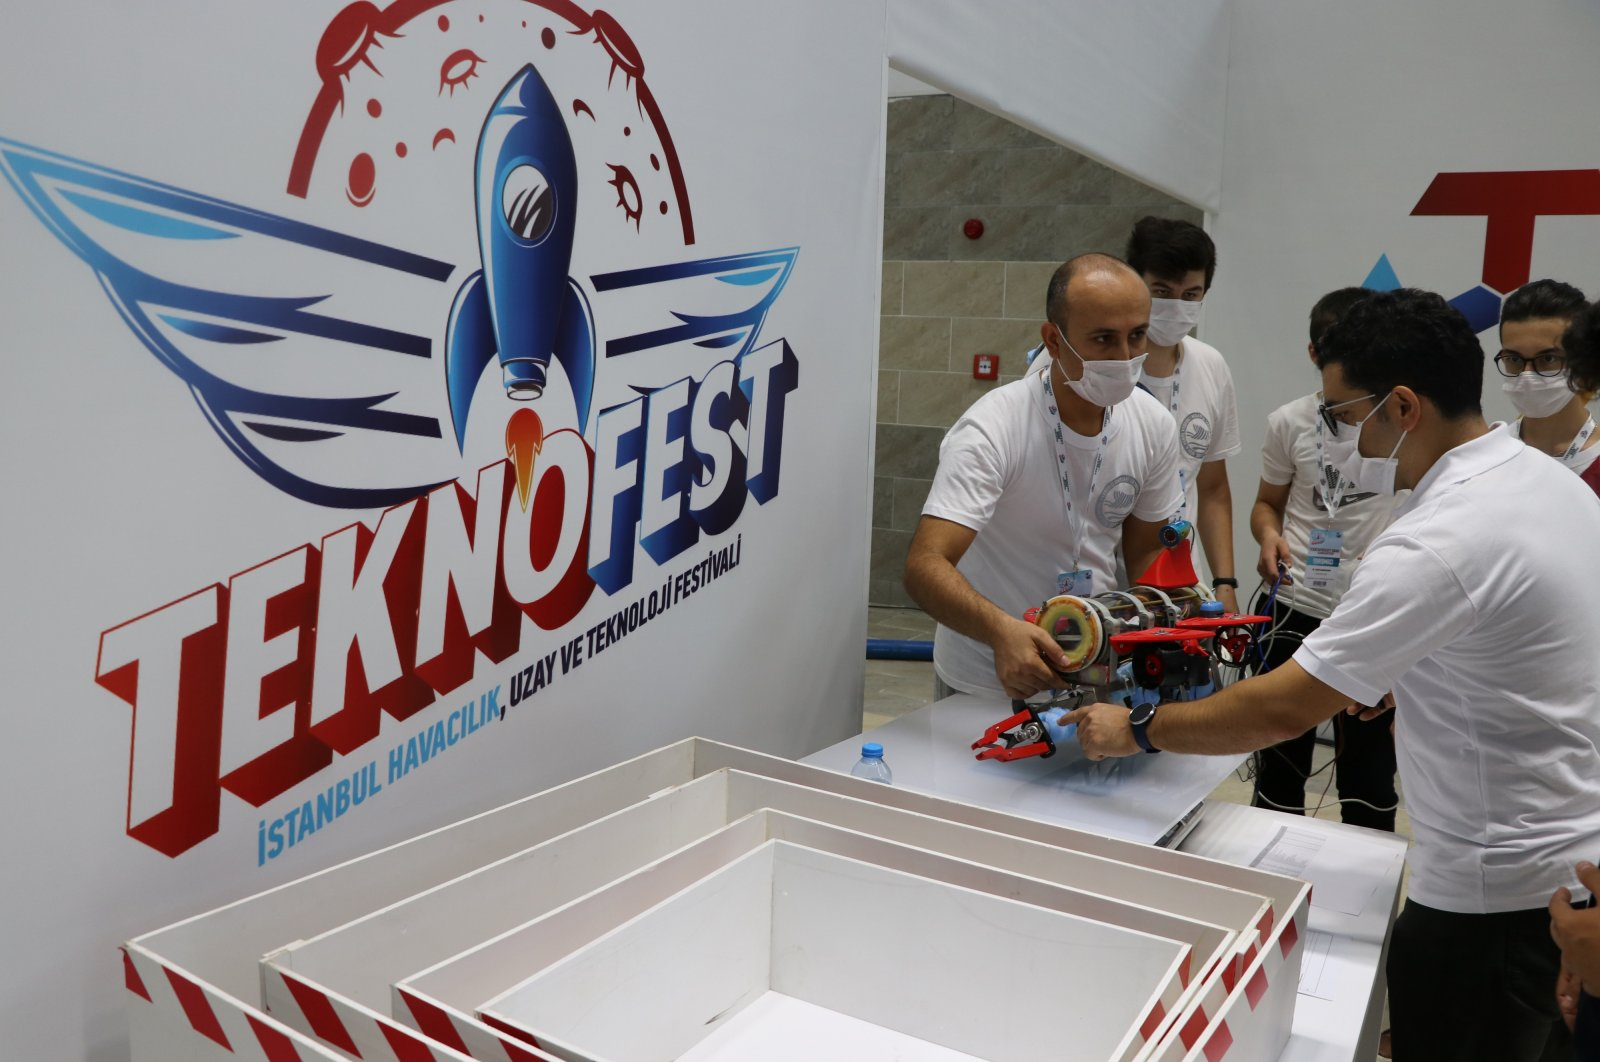 The unmanned submarine systems competition is held within the scope of Teknofest in Gaziantep's Olympic pool, Turkey, Sept. 23, 2020. (AA Photo)